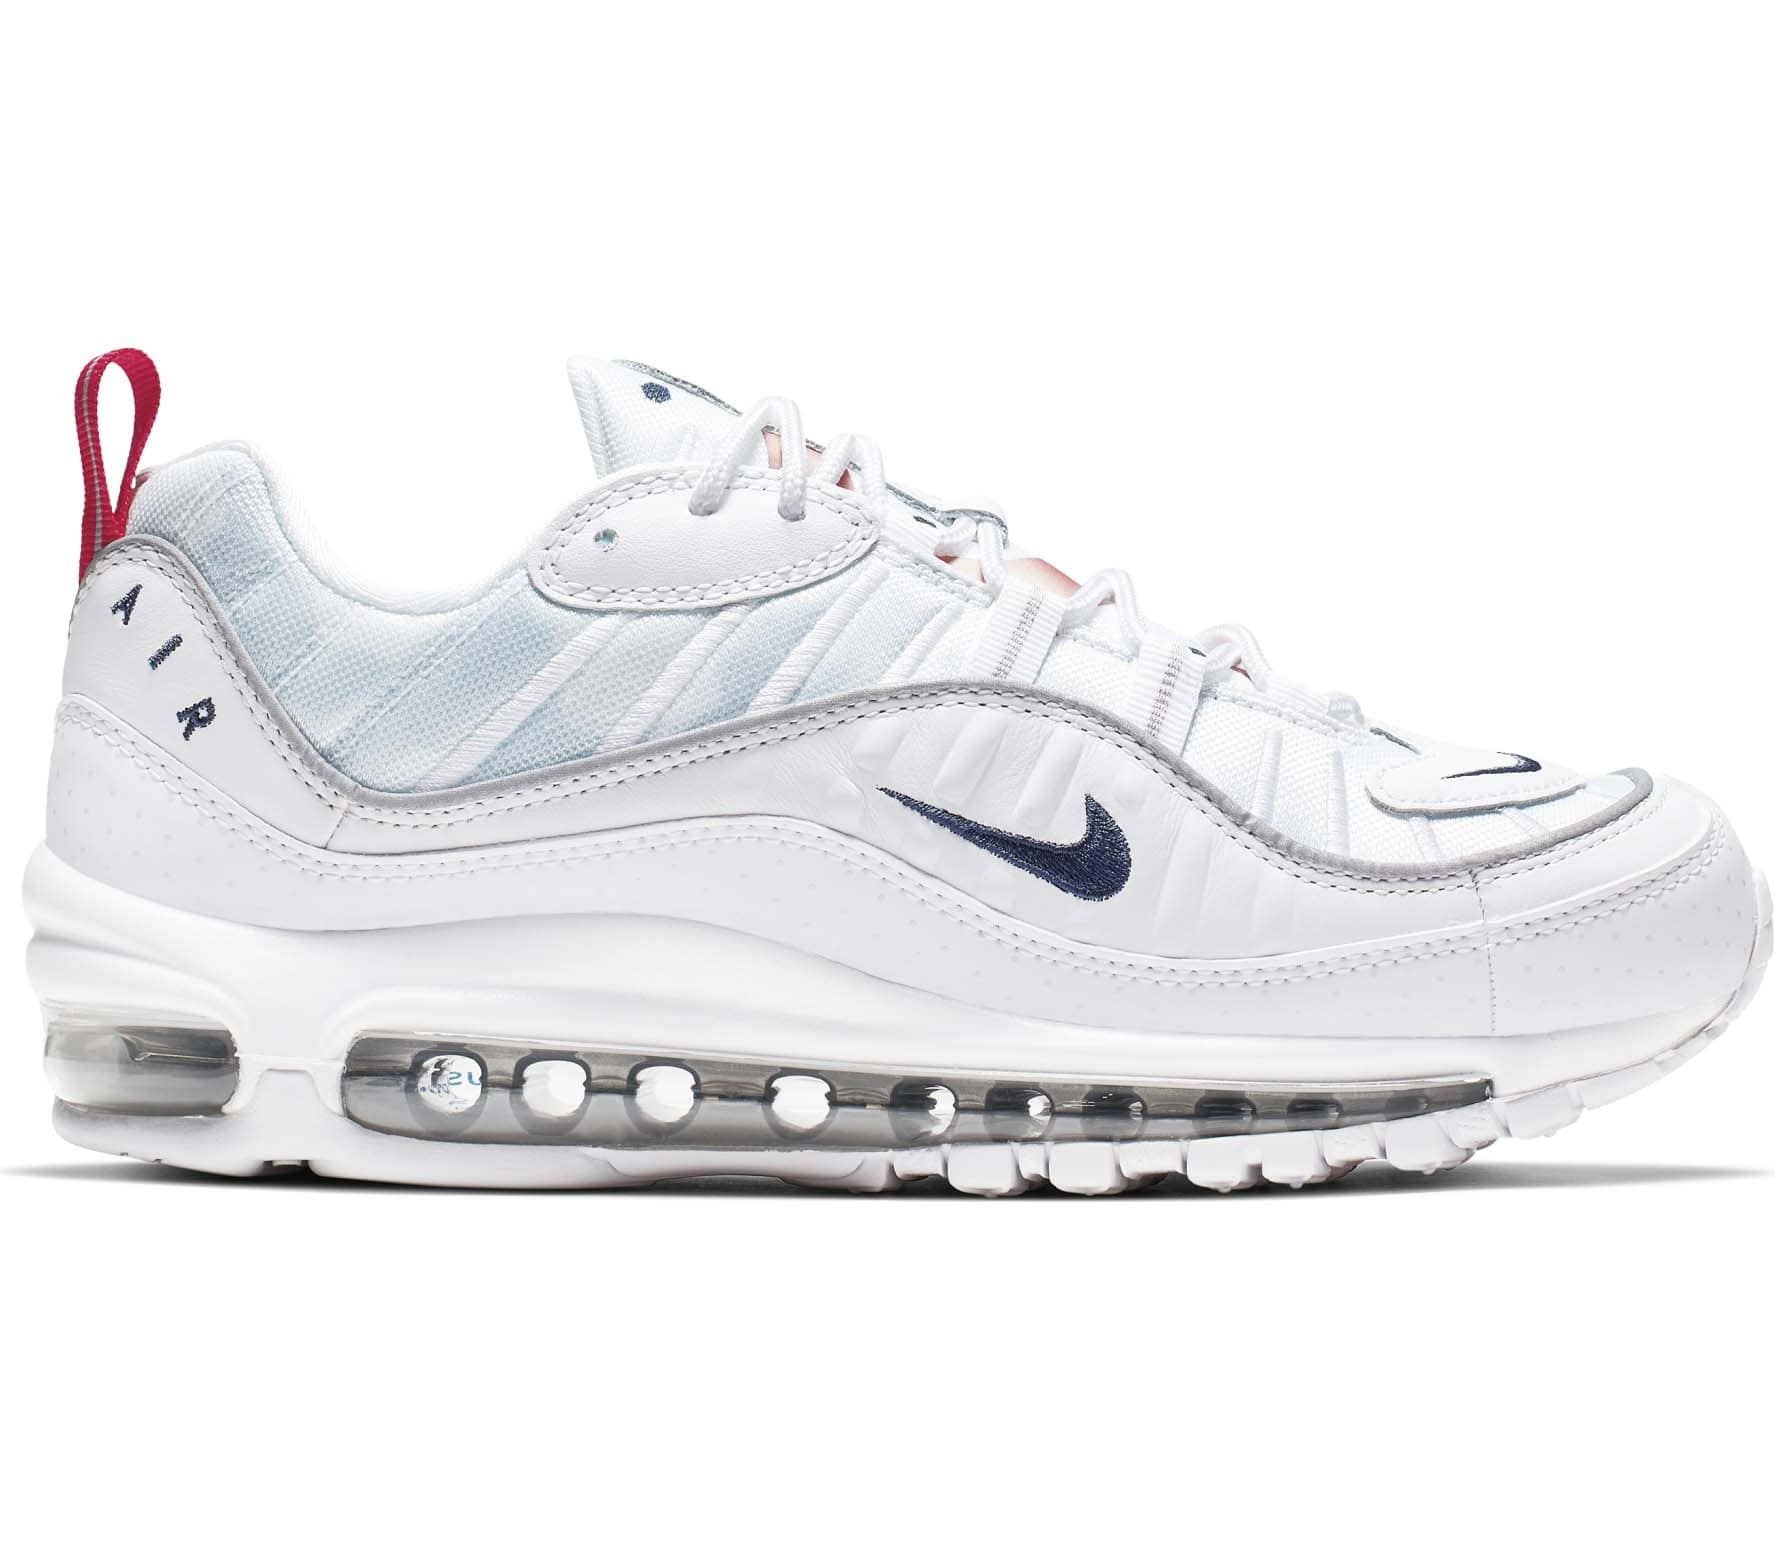 newest 8fbe0 df437 Nike Sportswear Air Max 98 Premium Women Sneakers white